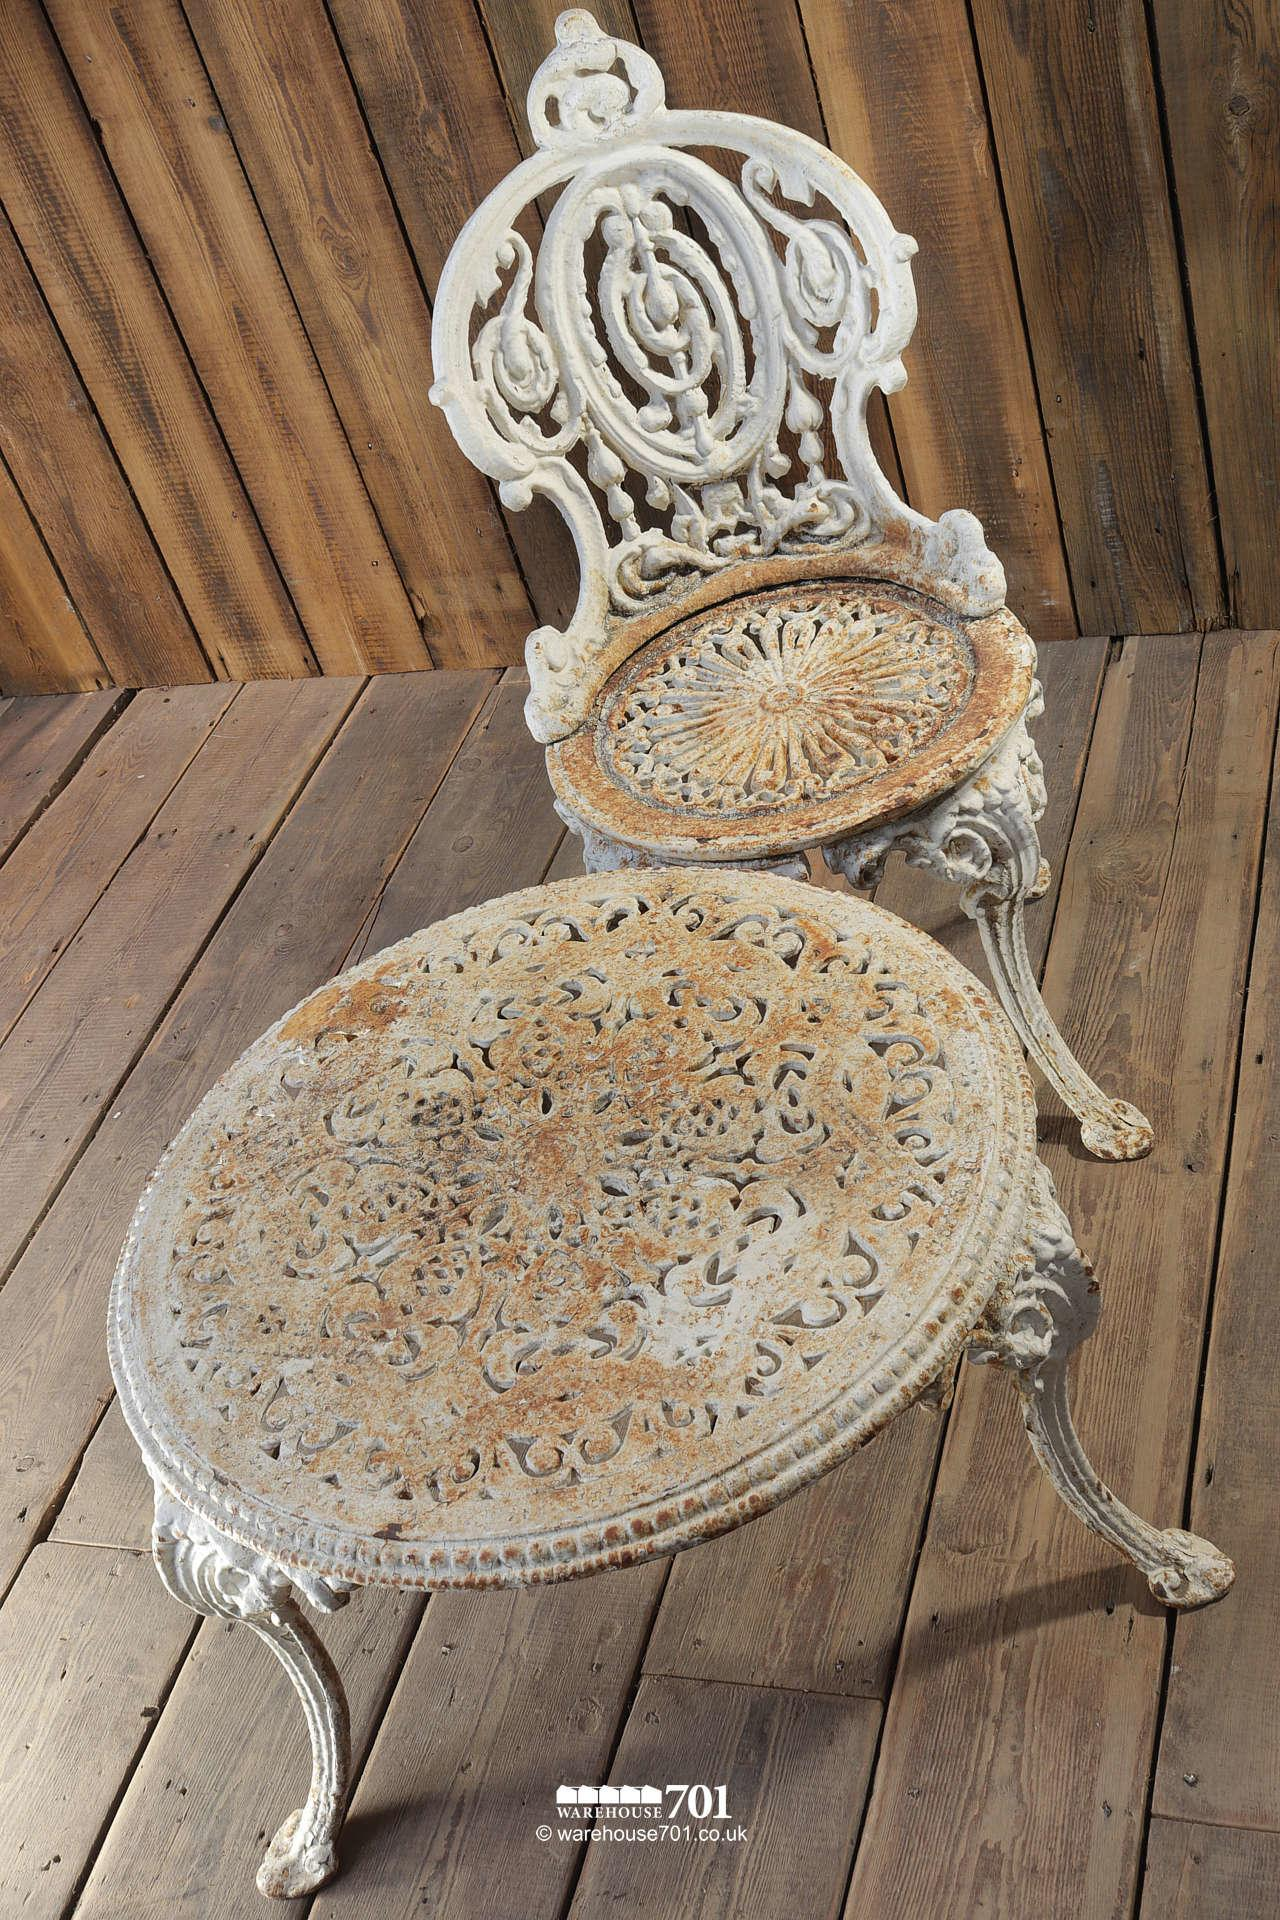 Antique Heavy Cast Iron White Garden Table and Chair #2